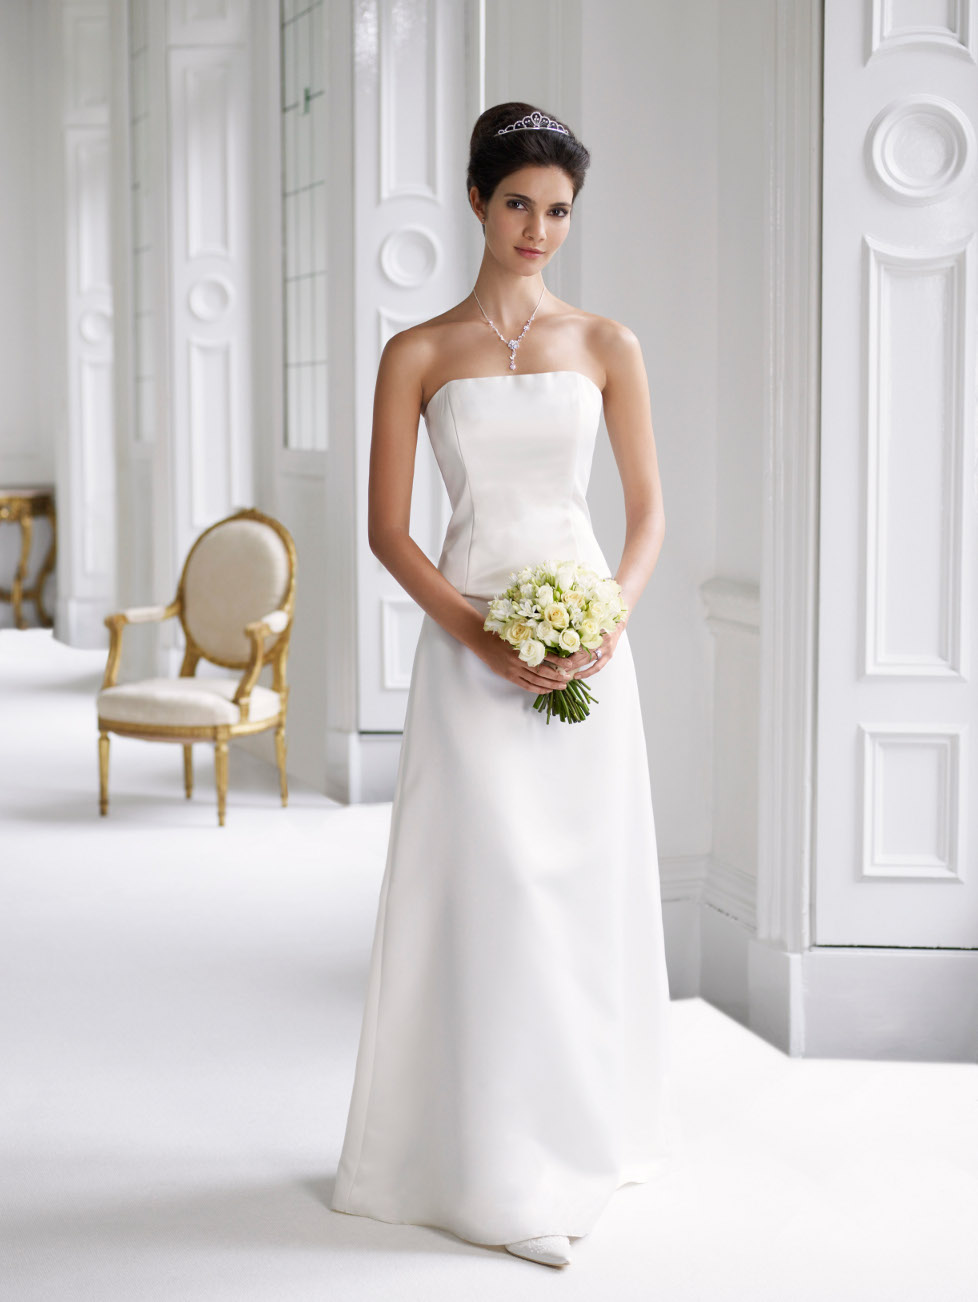 The tradition behind white wedding dresses cherry marry for White dresses for wedding